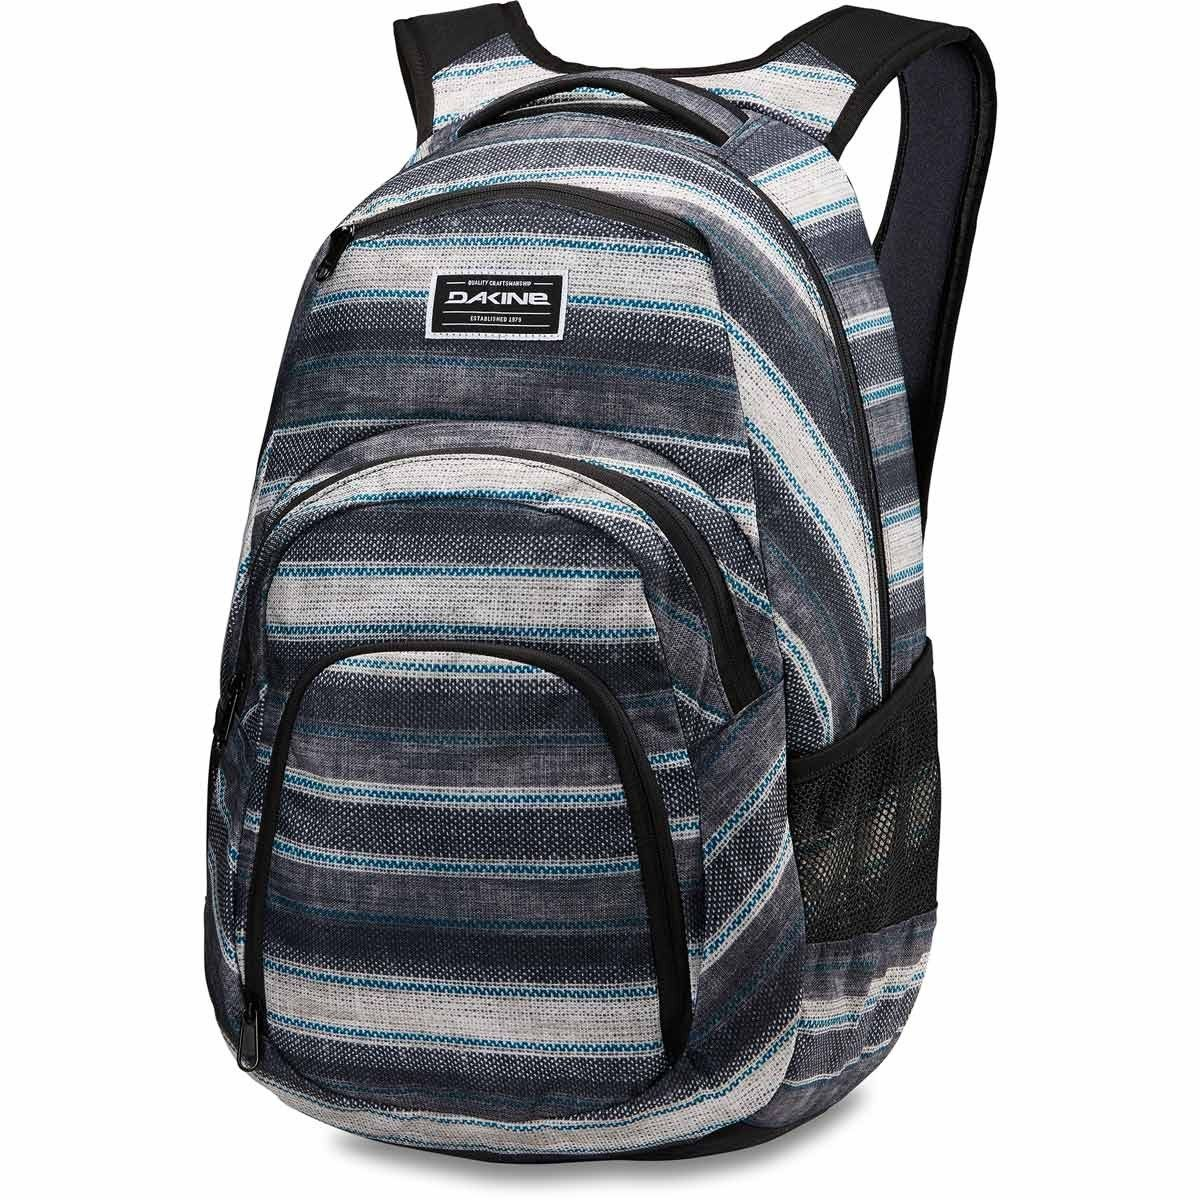 c0c5eb167b44f Dakine Section Wet Dry Backpack - BD Fabrications